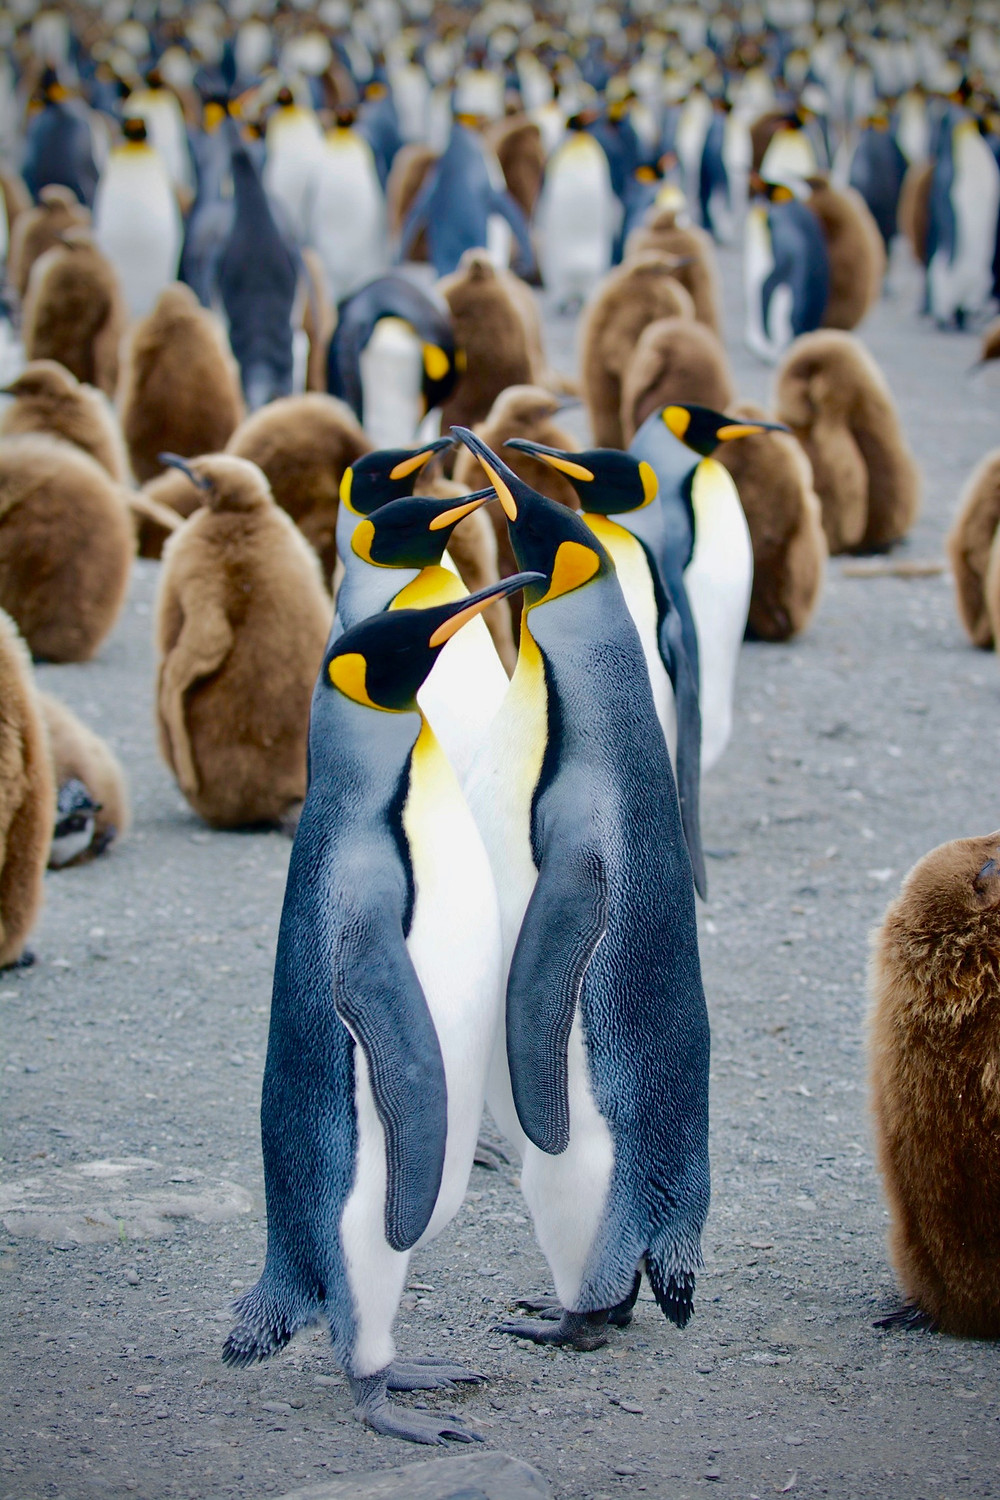 Five king penguins stand in a row before a mass of brown chicks and other penguins of the colony at South Georgia